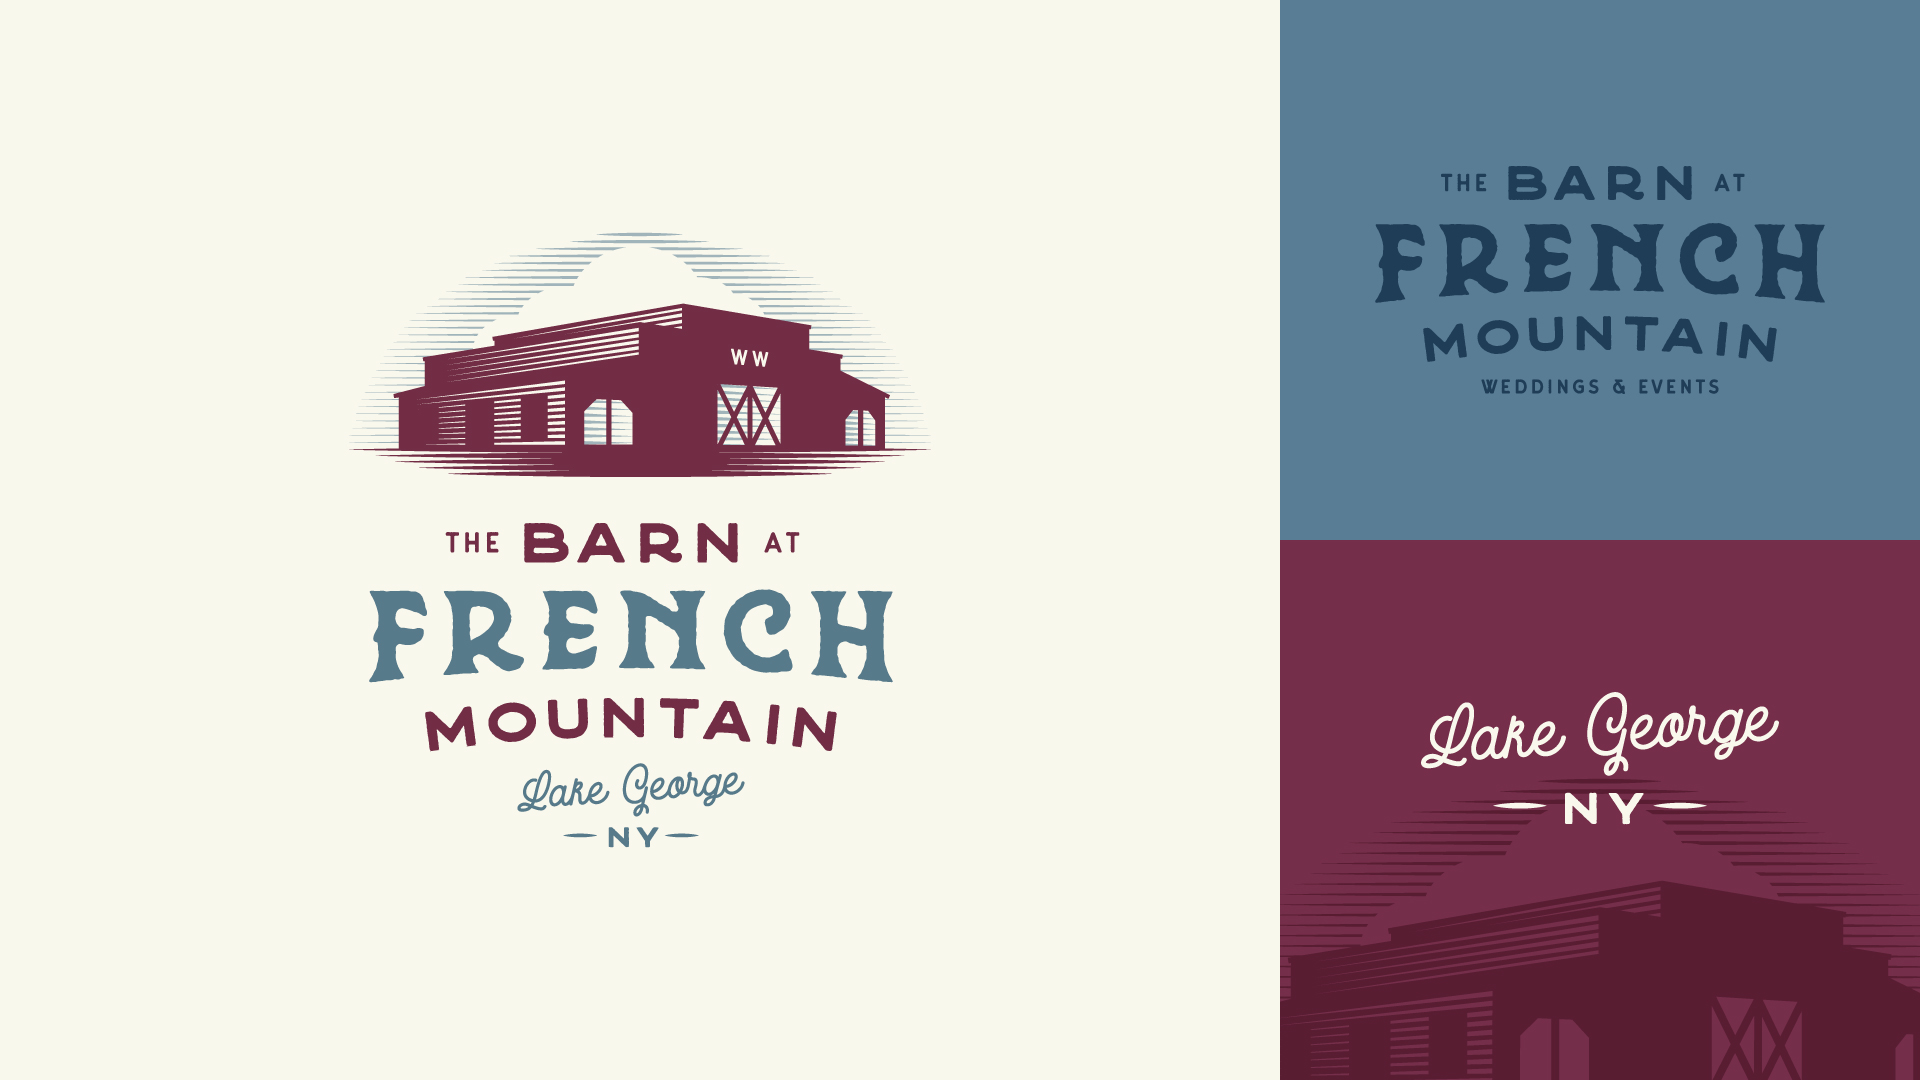 Approved Concept - The final branding concept was chosen for it's realistic illustration of the venue and its expressive typography.